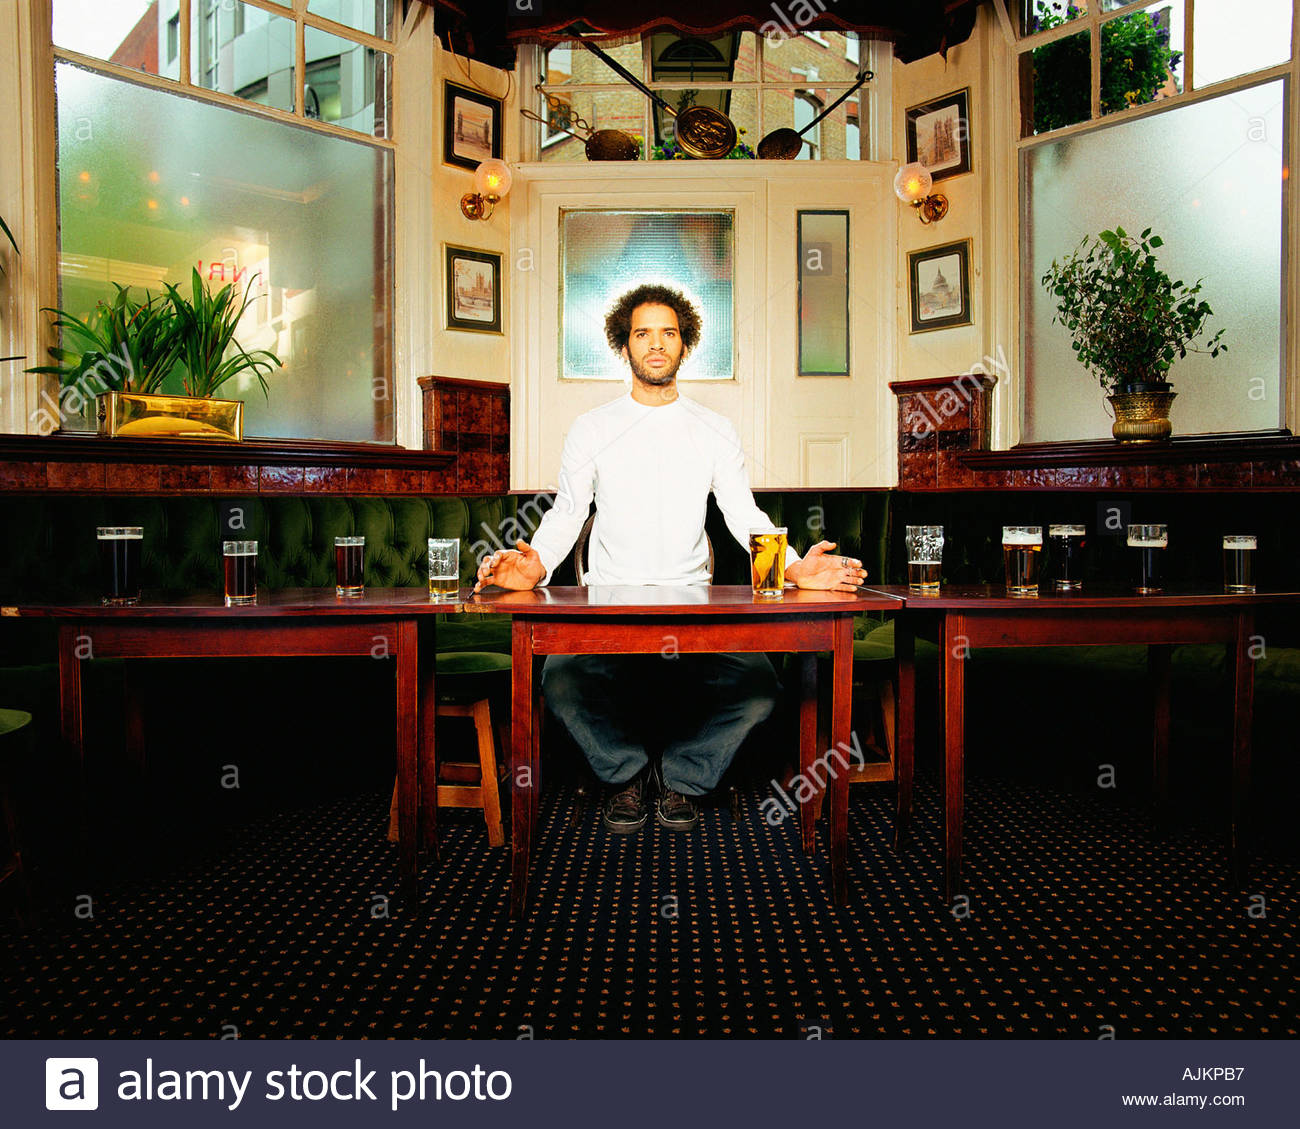 Man with halo in pub - Stock Image